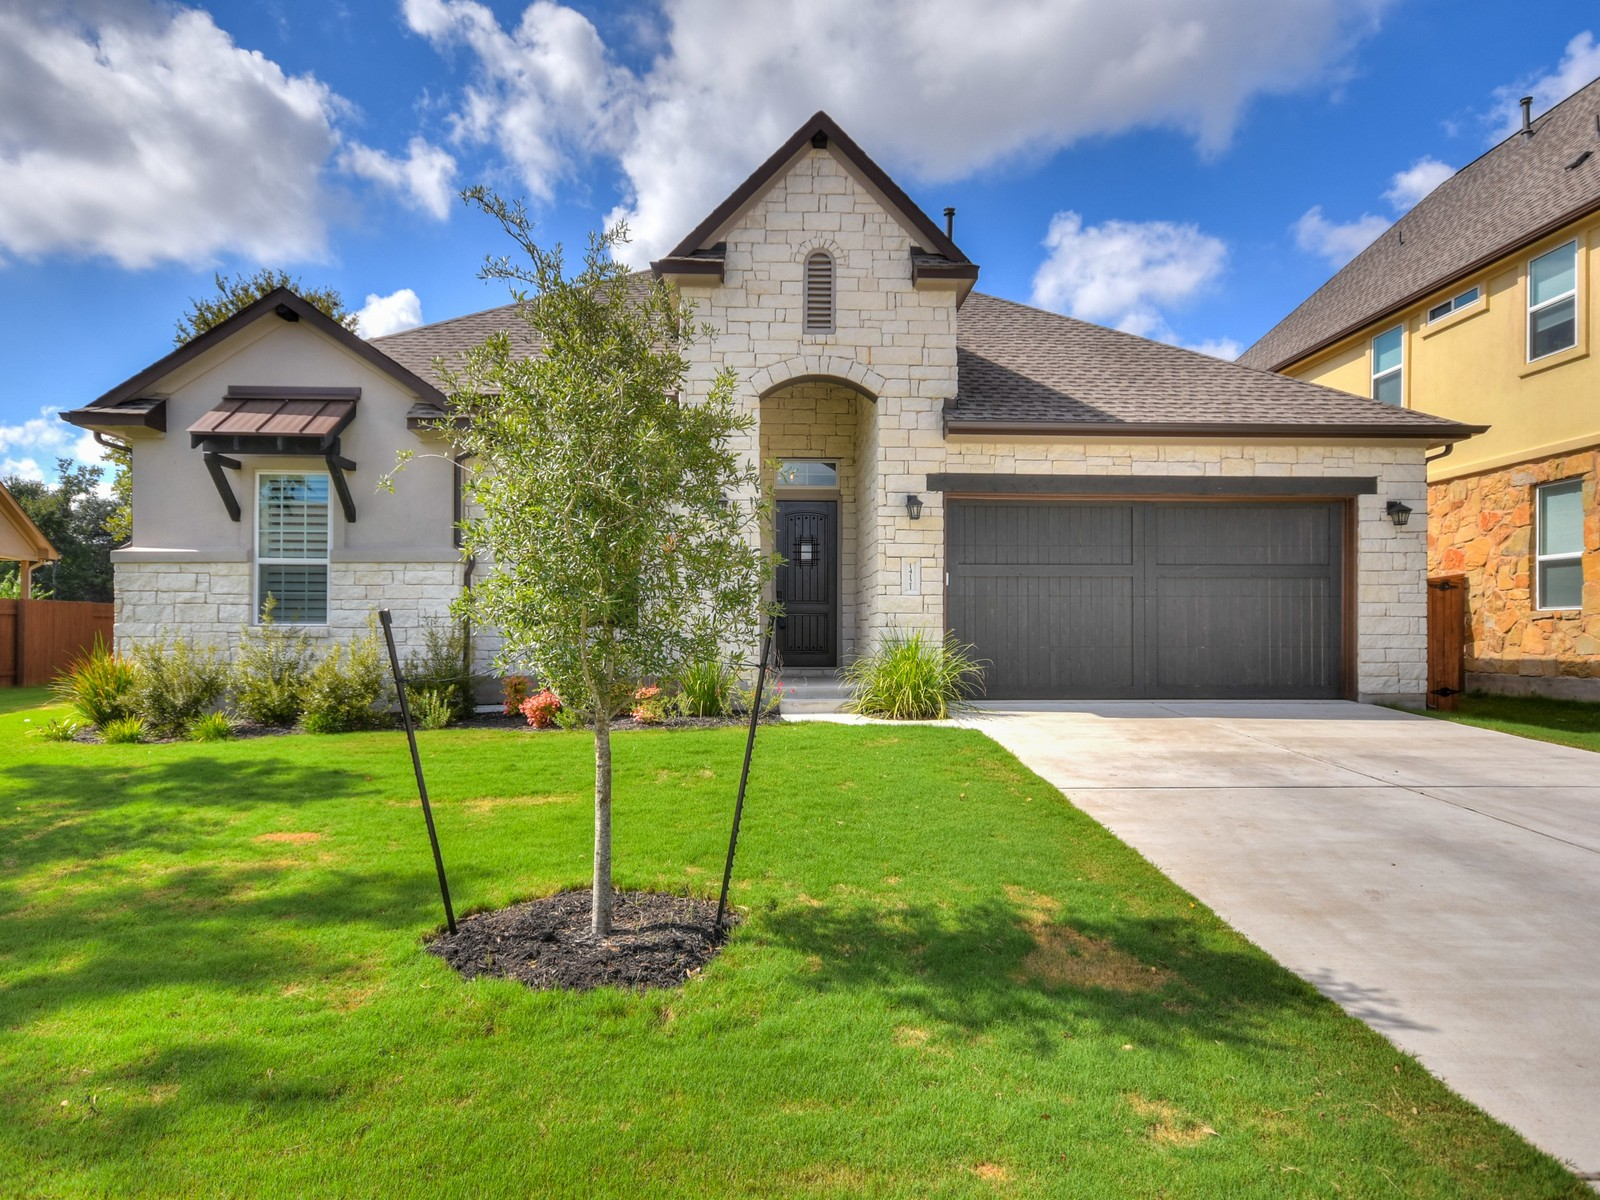 Single Family Home for Sale at Avery Ranch Single Story 14121 Genesee Trl Austin, Texas 78717 United States